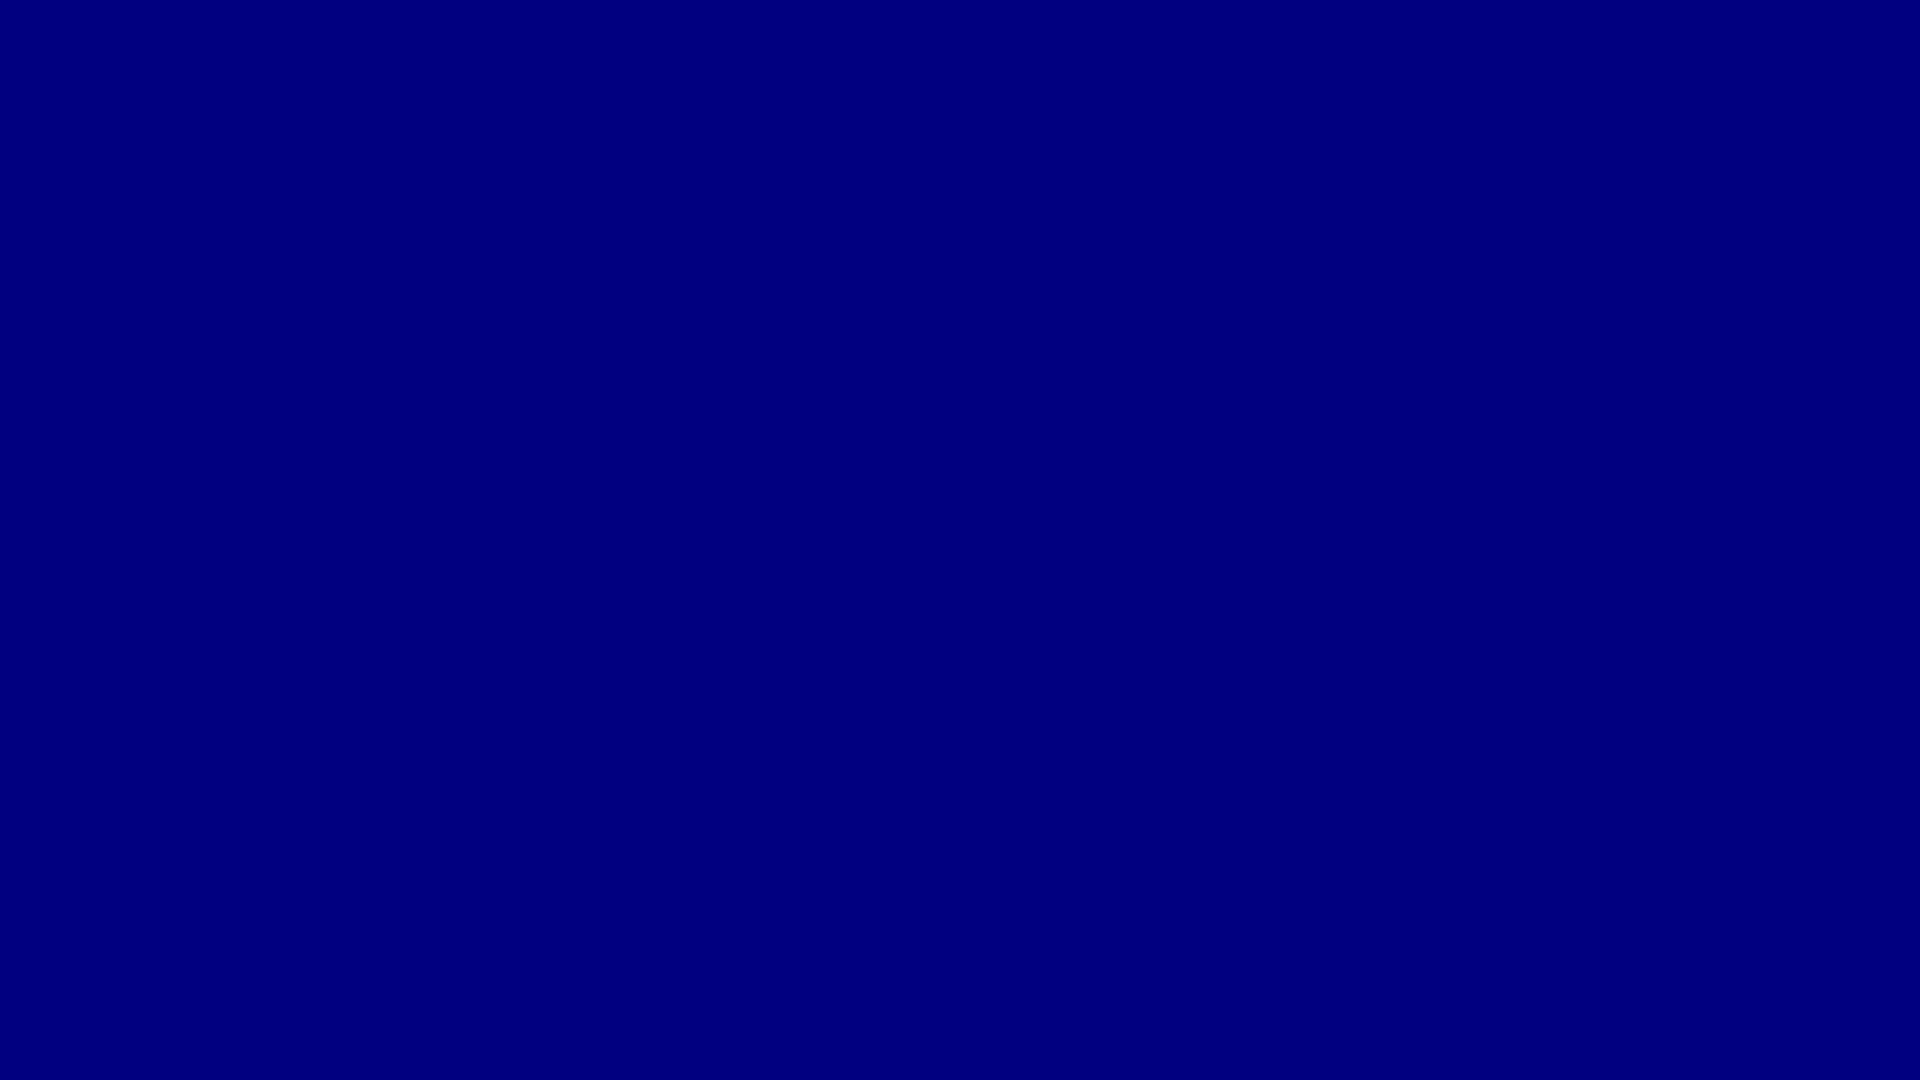 1920x1080 resolution Navy Blue solid color background view and 1920x1080